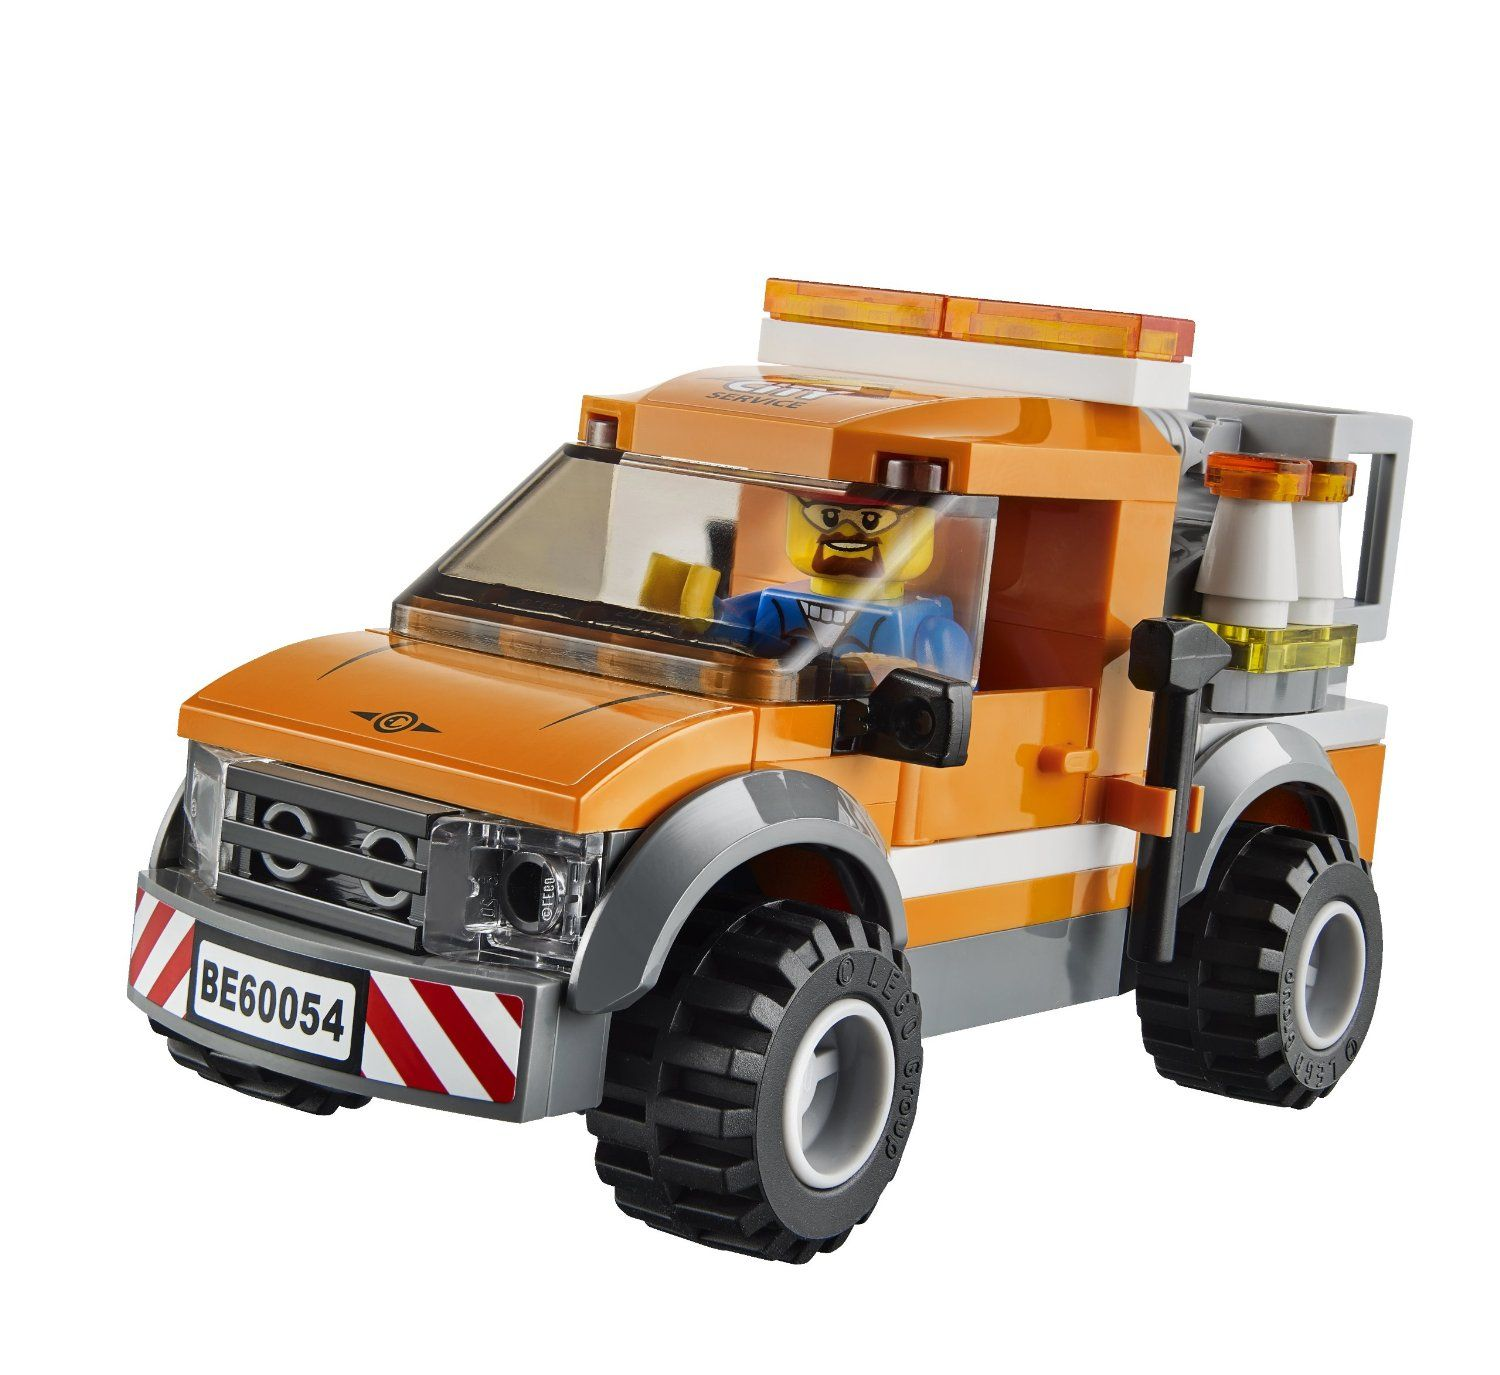 LEGO City Great Vehicles 60054 Light Repair